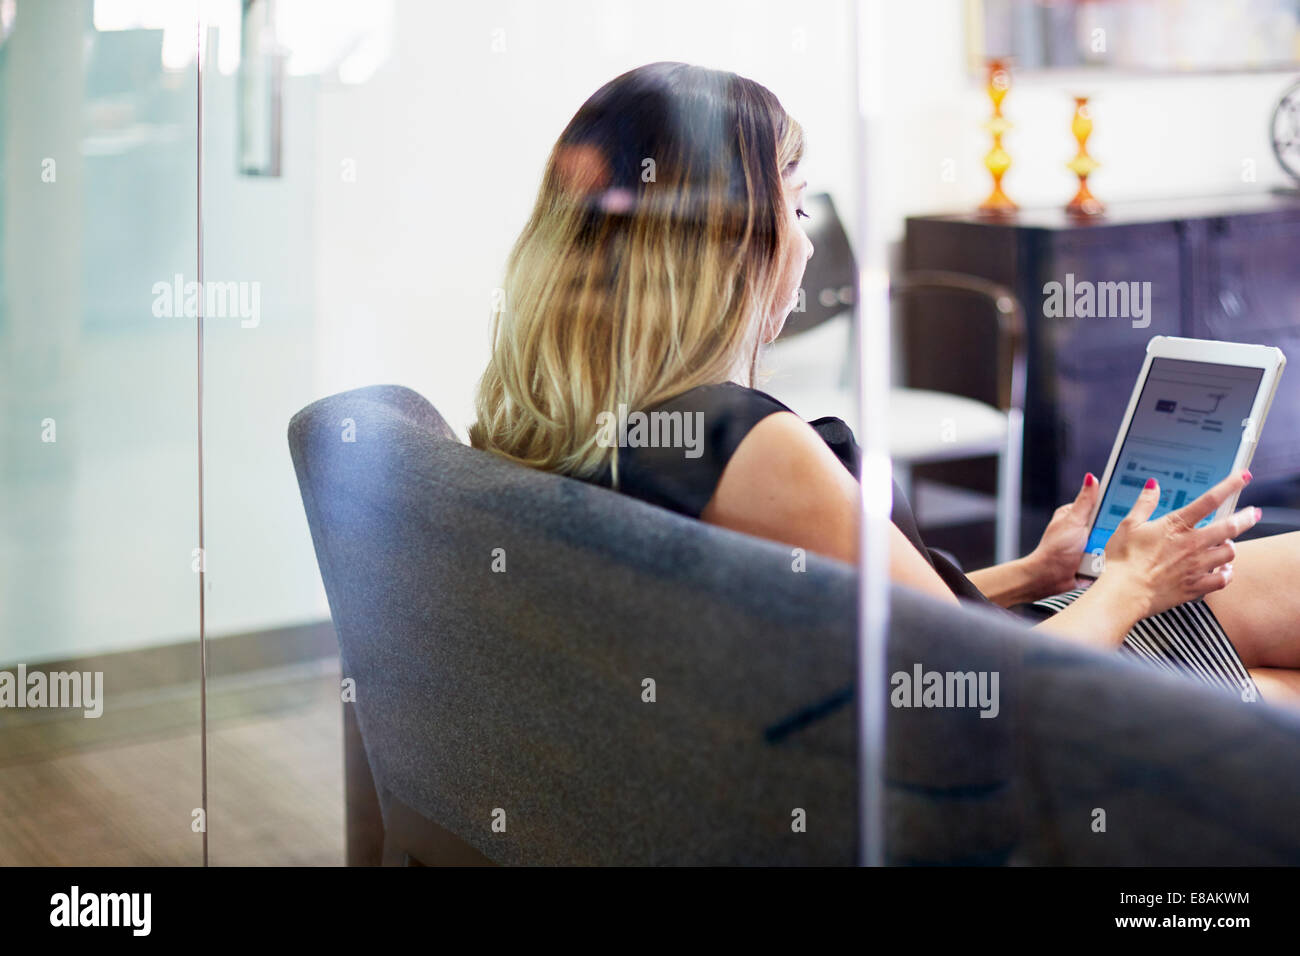 Young woman on sofa using tablet - Stock Image